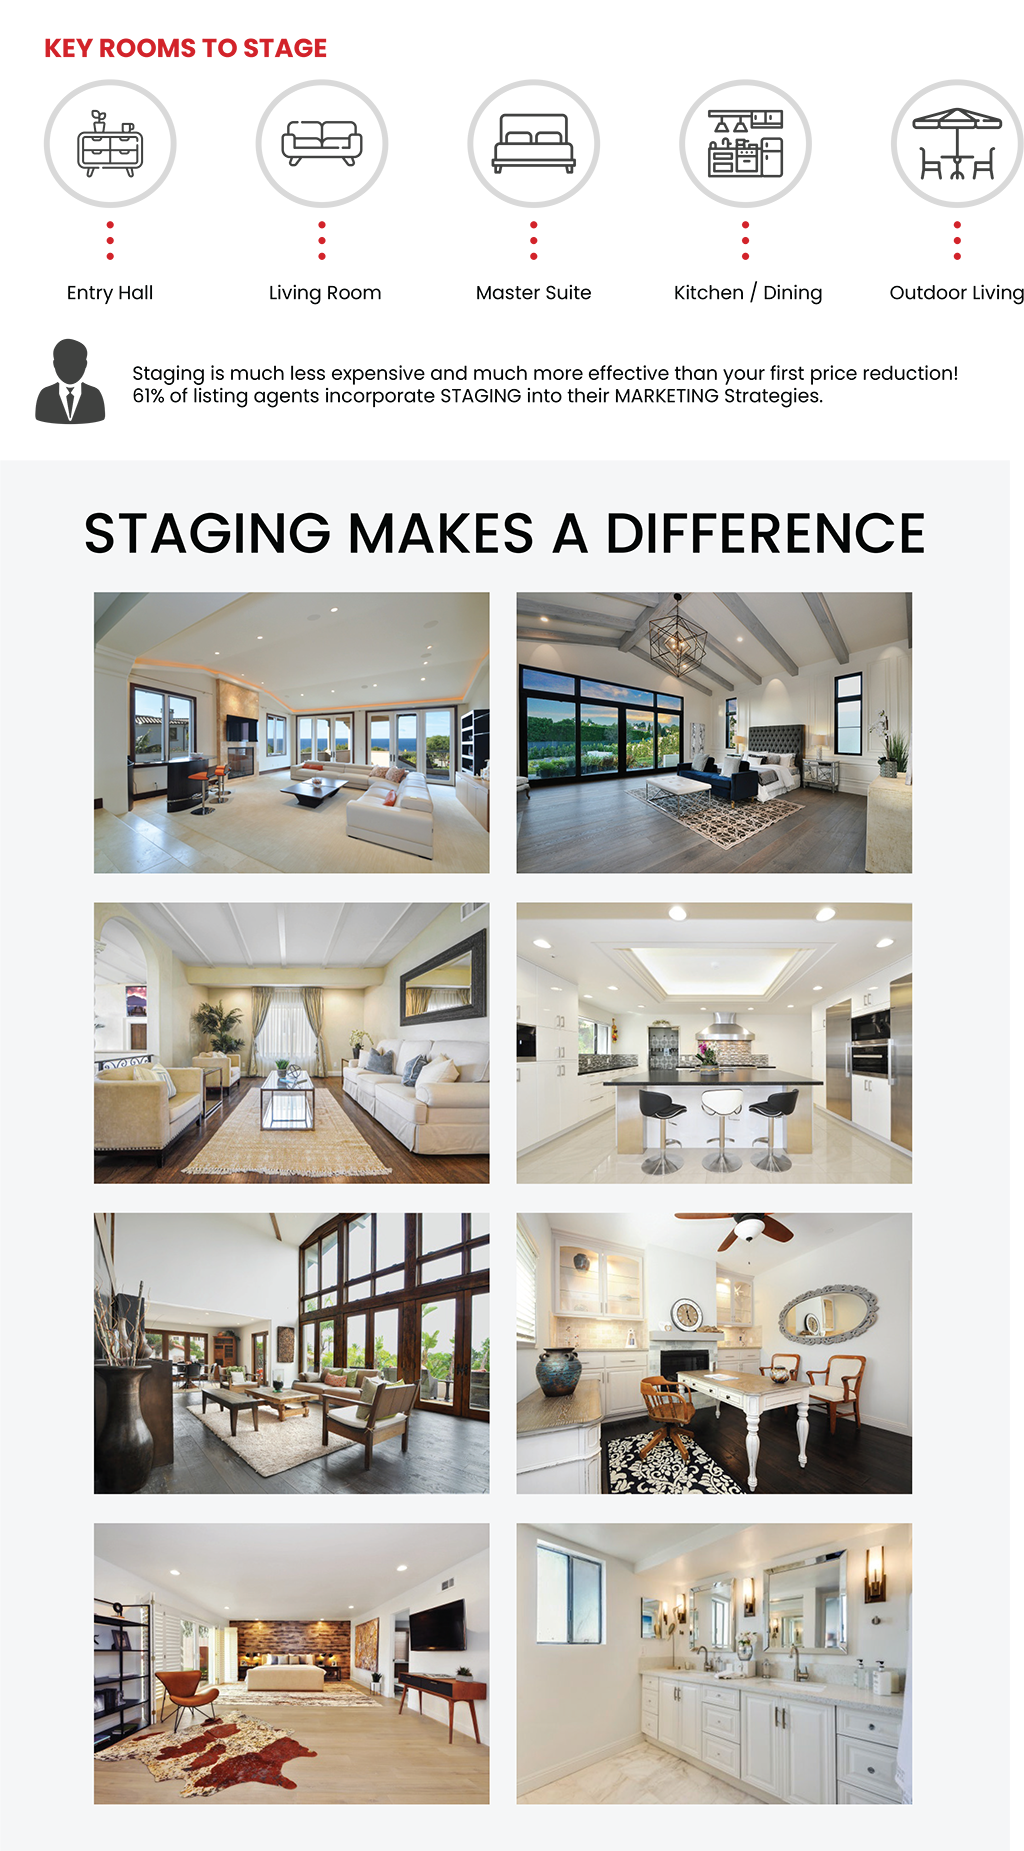 Key Rooms to Stage. Entry hall, living room, master suite, kitchen/dining, outdoor living. Staging is much less expensive and much more effective than your first price reduction! 61% of listing agents incorporate staging into their marketing strategies. staging makes a difference.